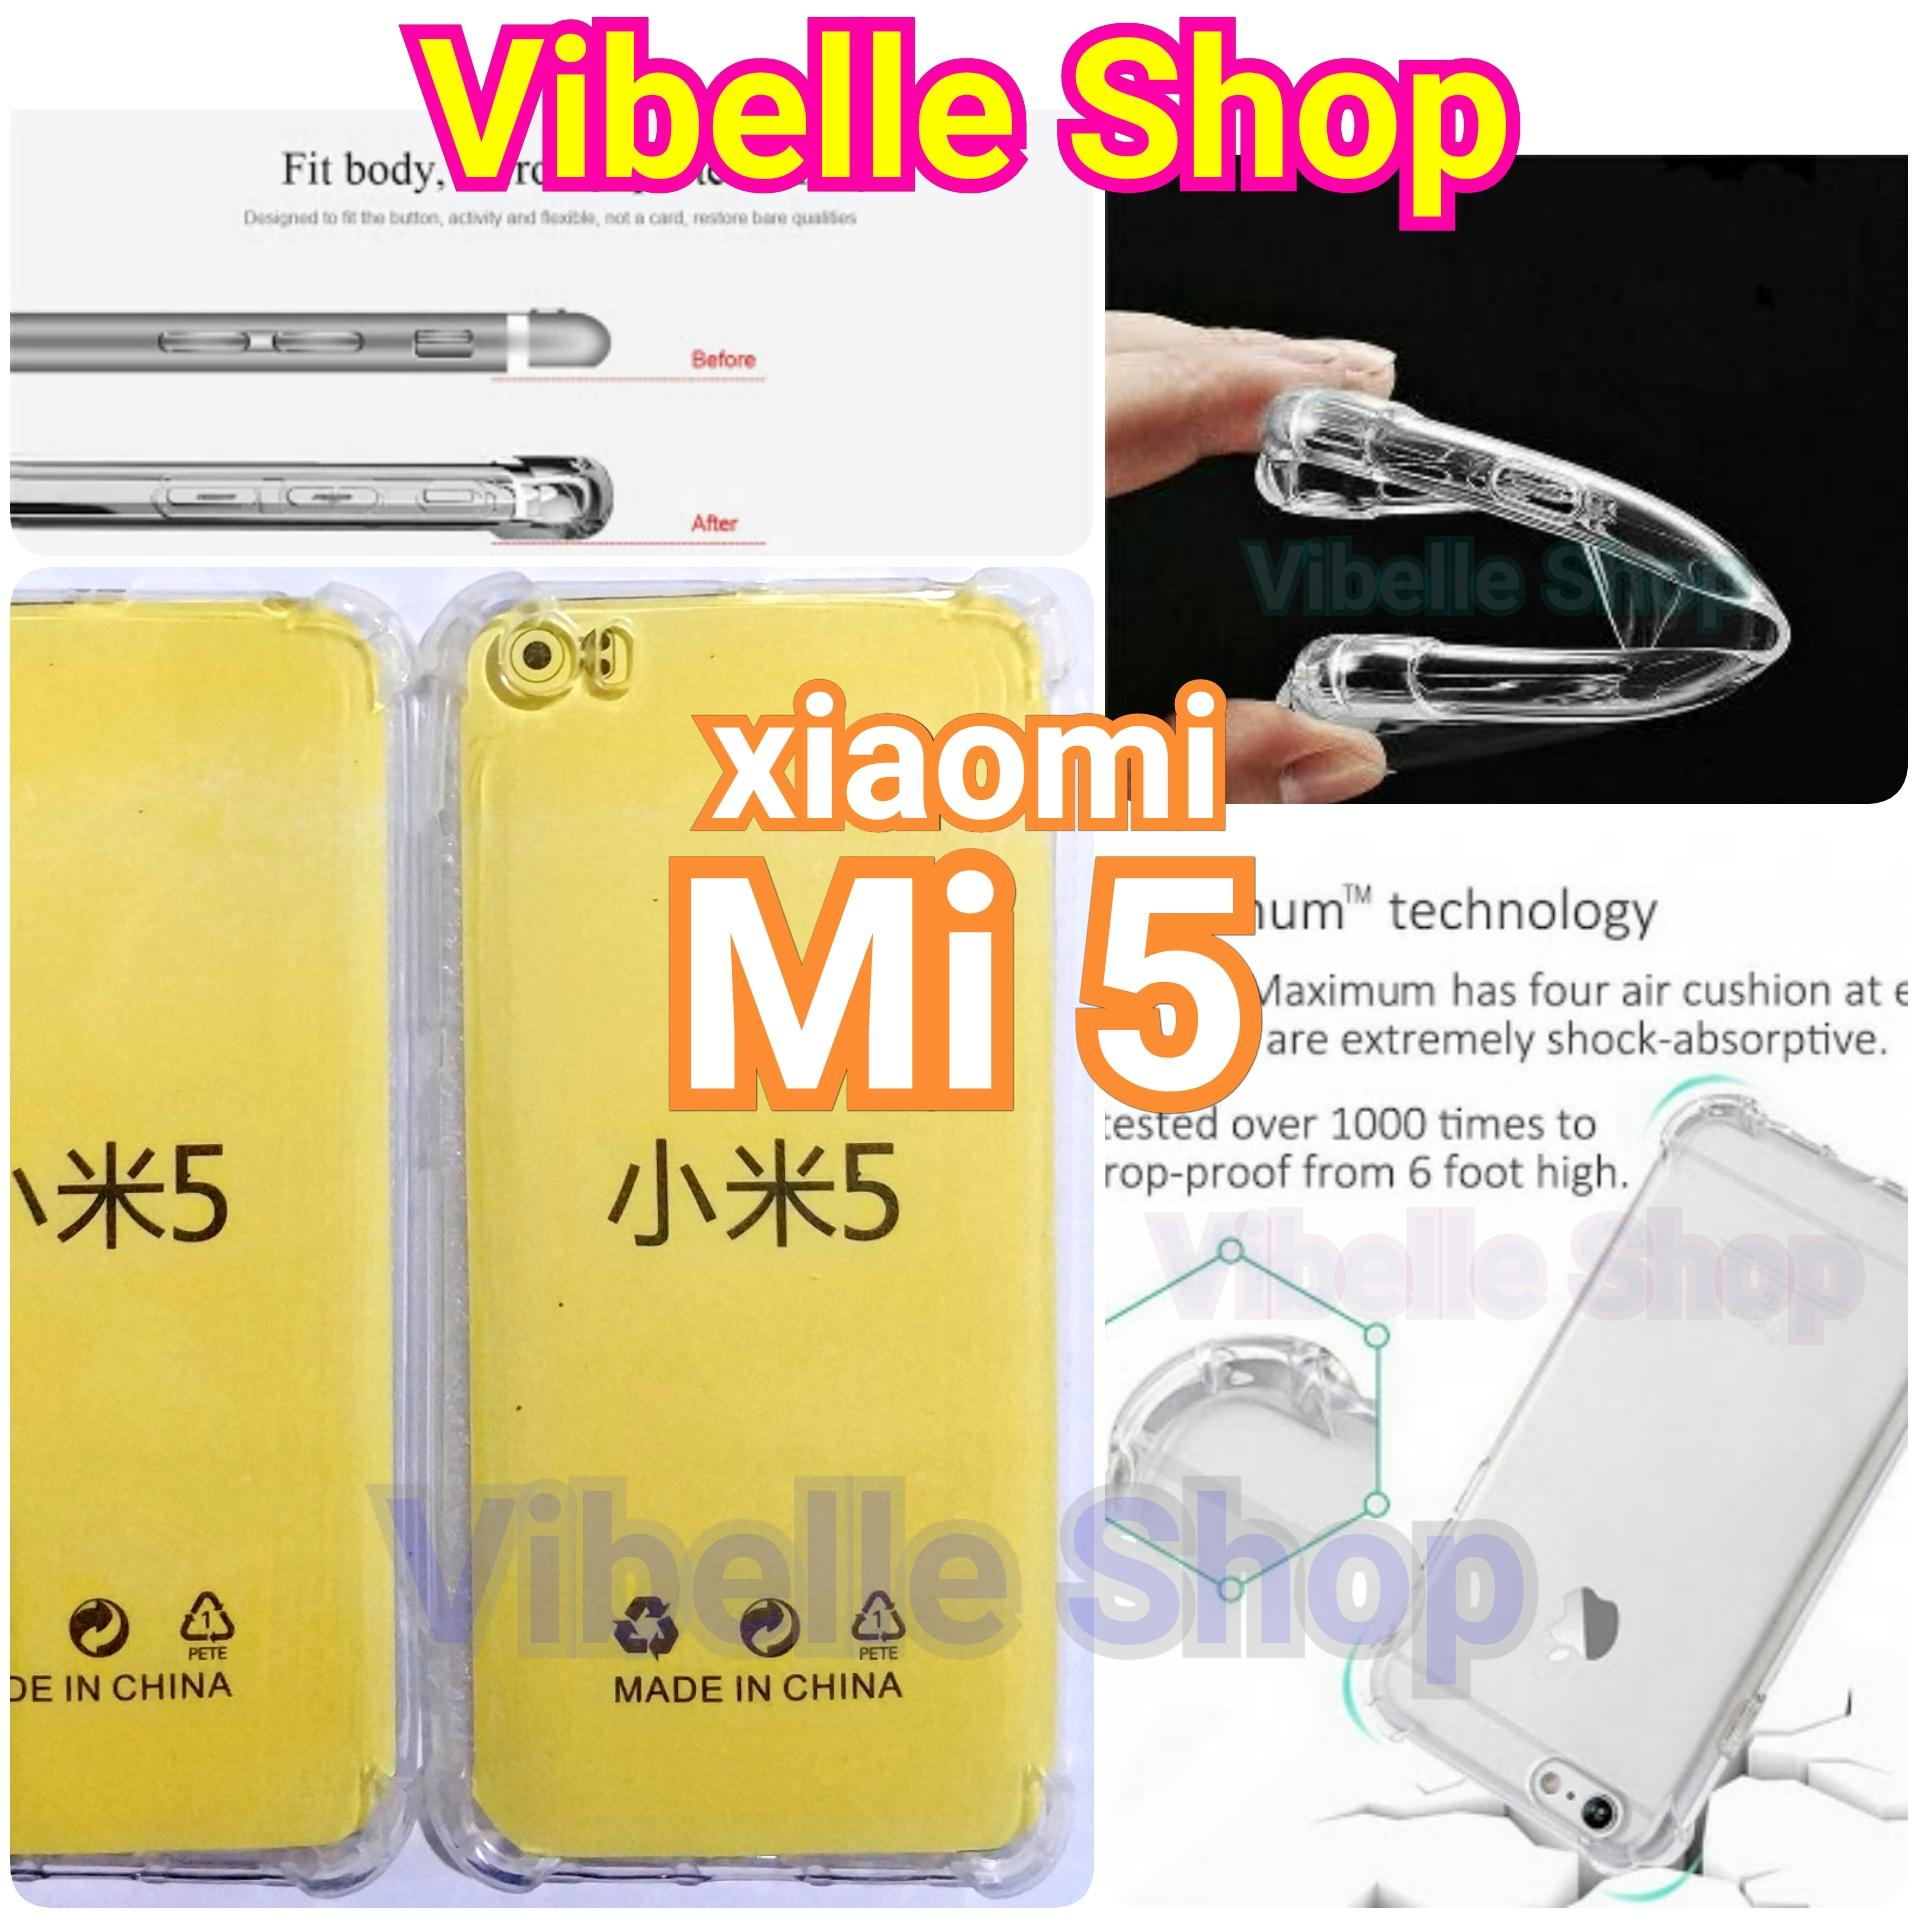 Softcase Anticrack Xiaomi Mi 5 - Clear - Anti Crack Soft Back Jely Shock Case xiaomi Mi 5